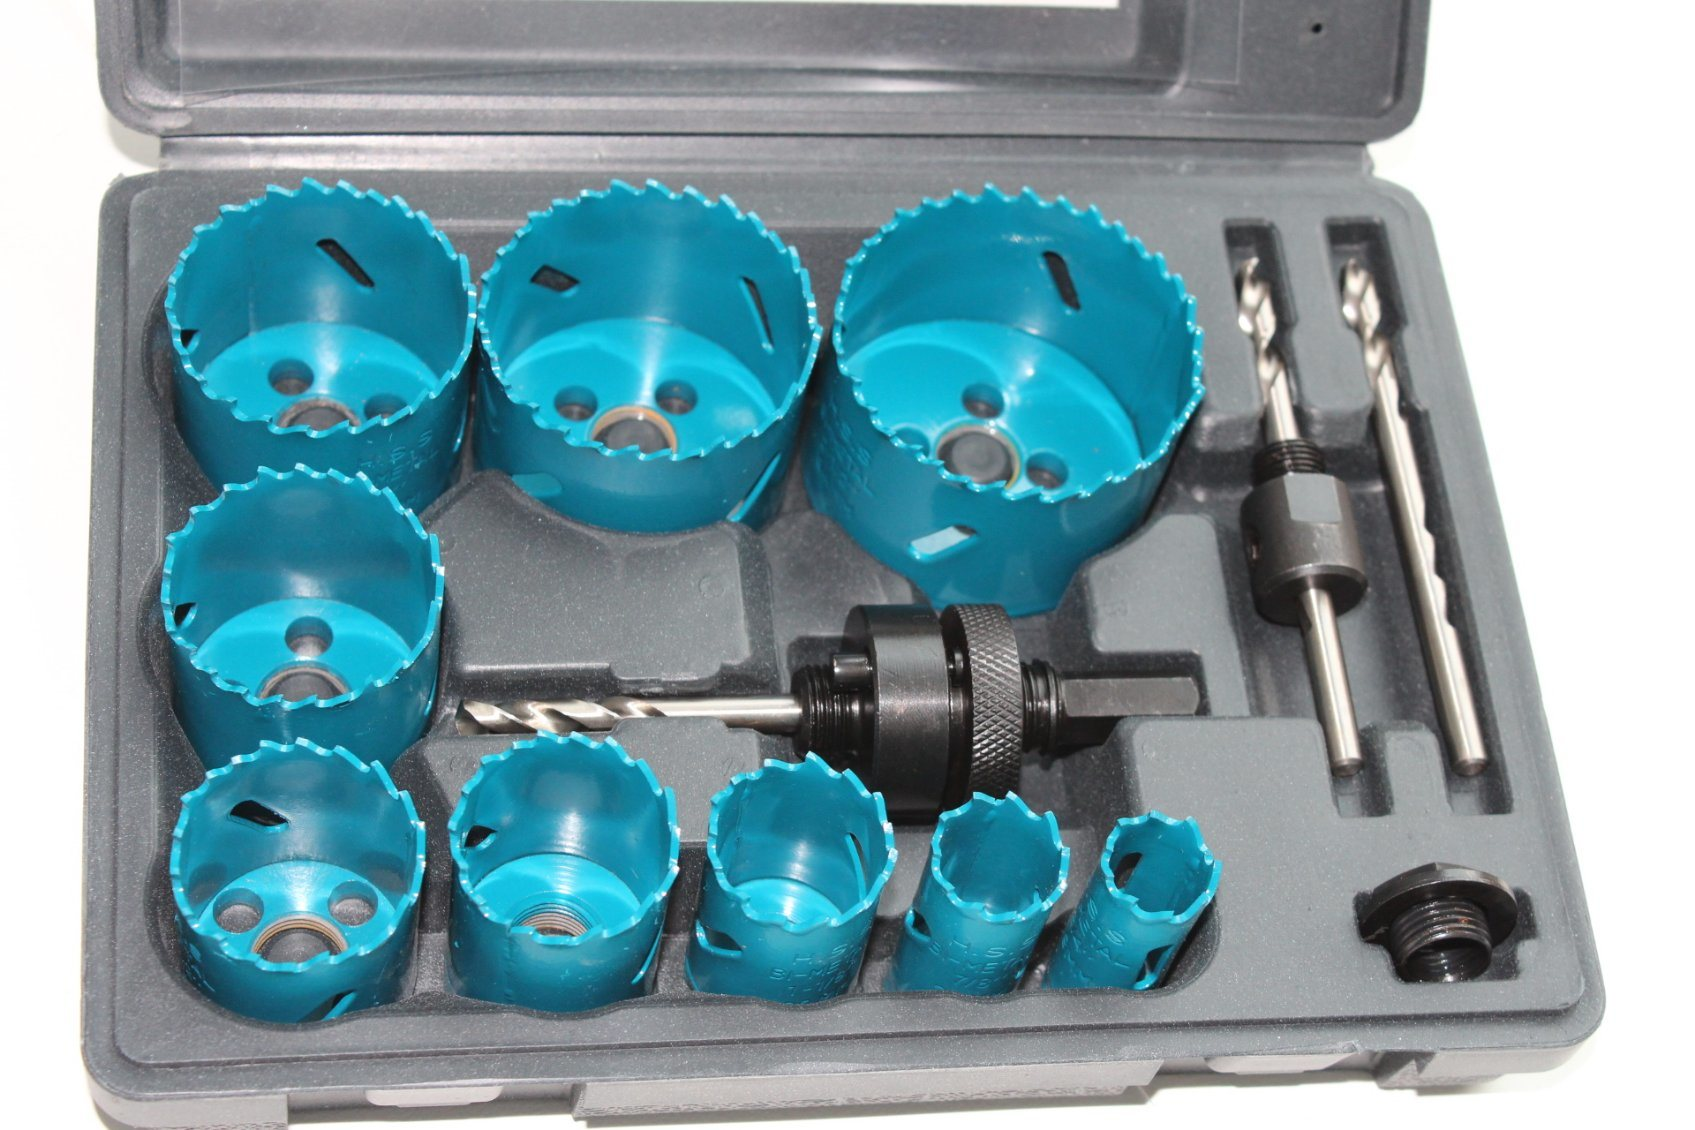 Bi-Metal Hole Saw, Hole Saw Set